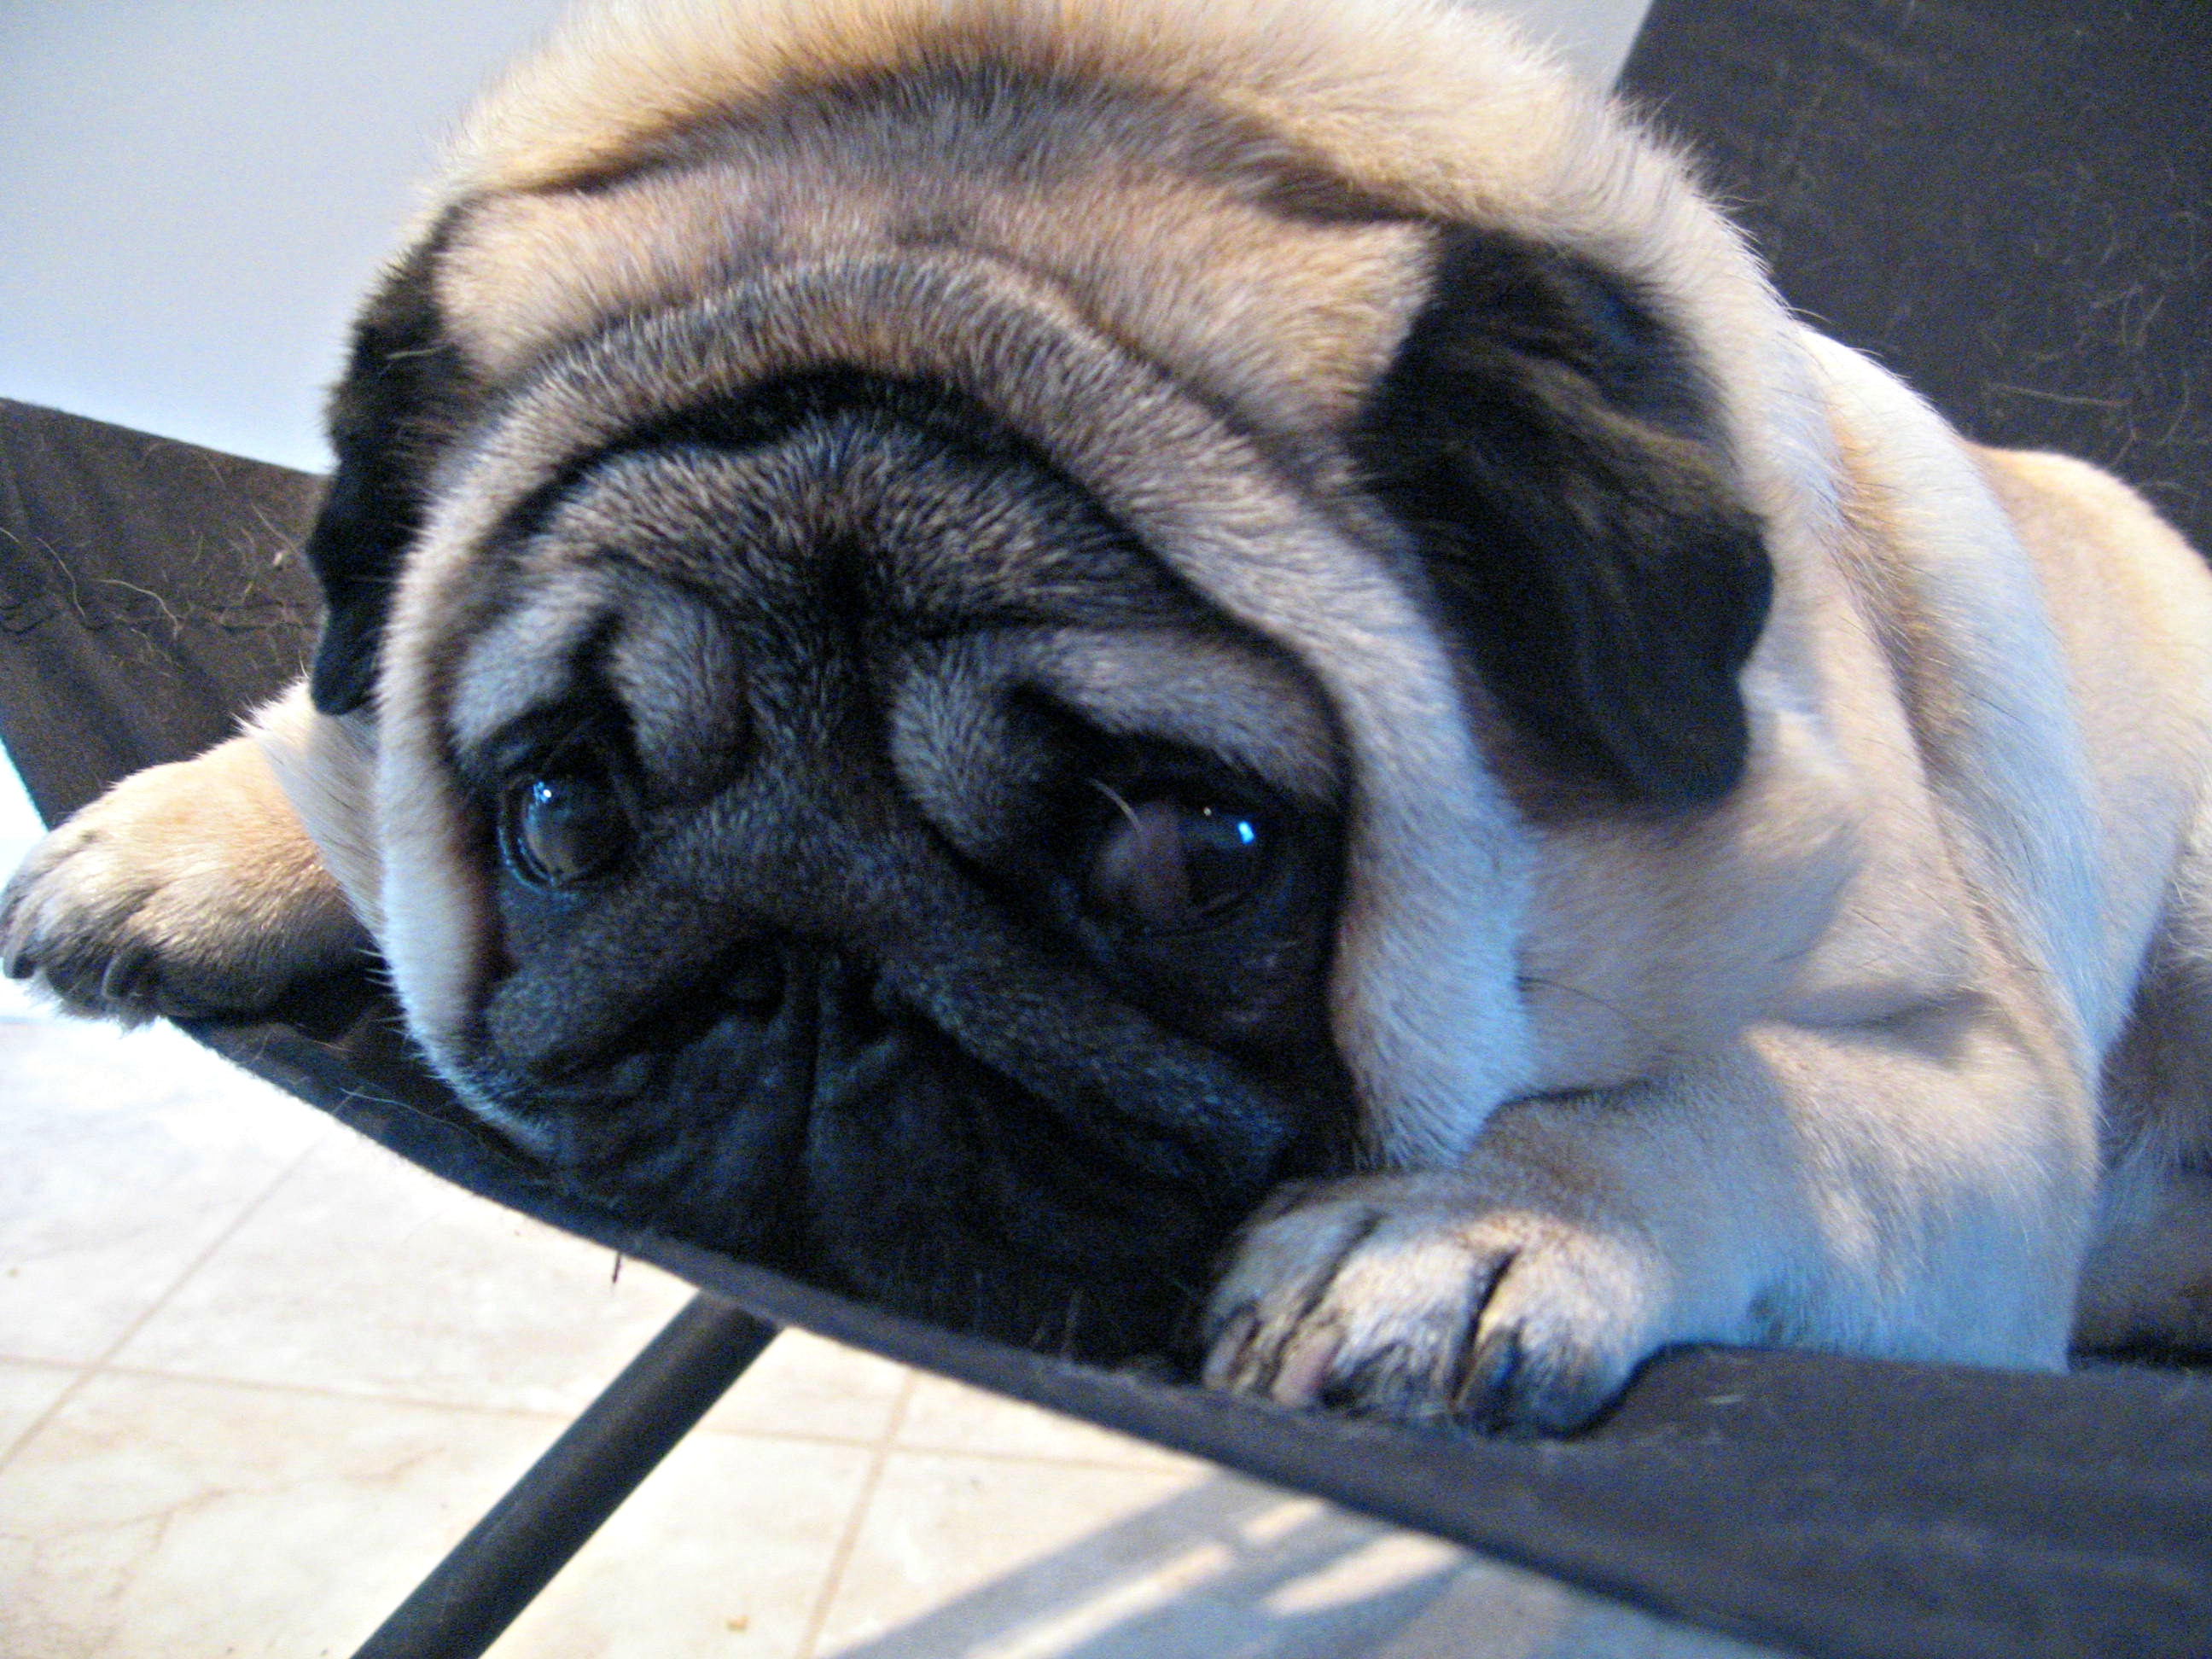 Description Gadget the pug expressive eyes.jpg